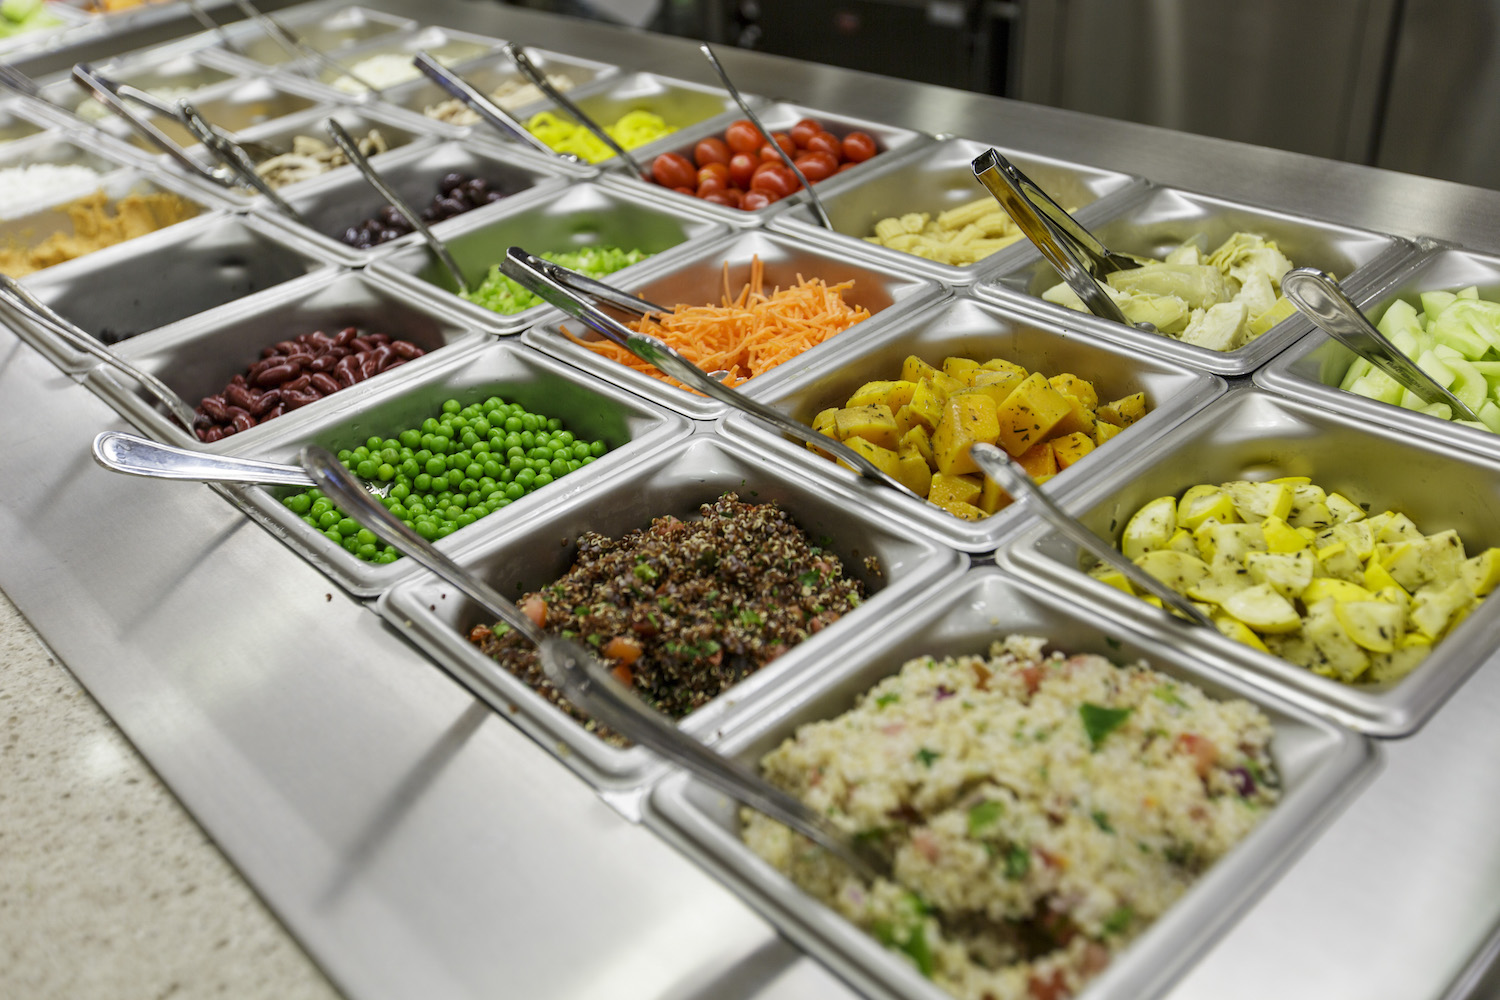 UK Hospital opens spectacular new dining court | Food ...